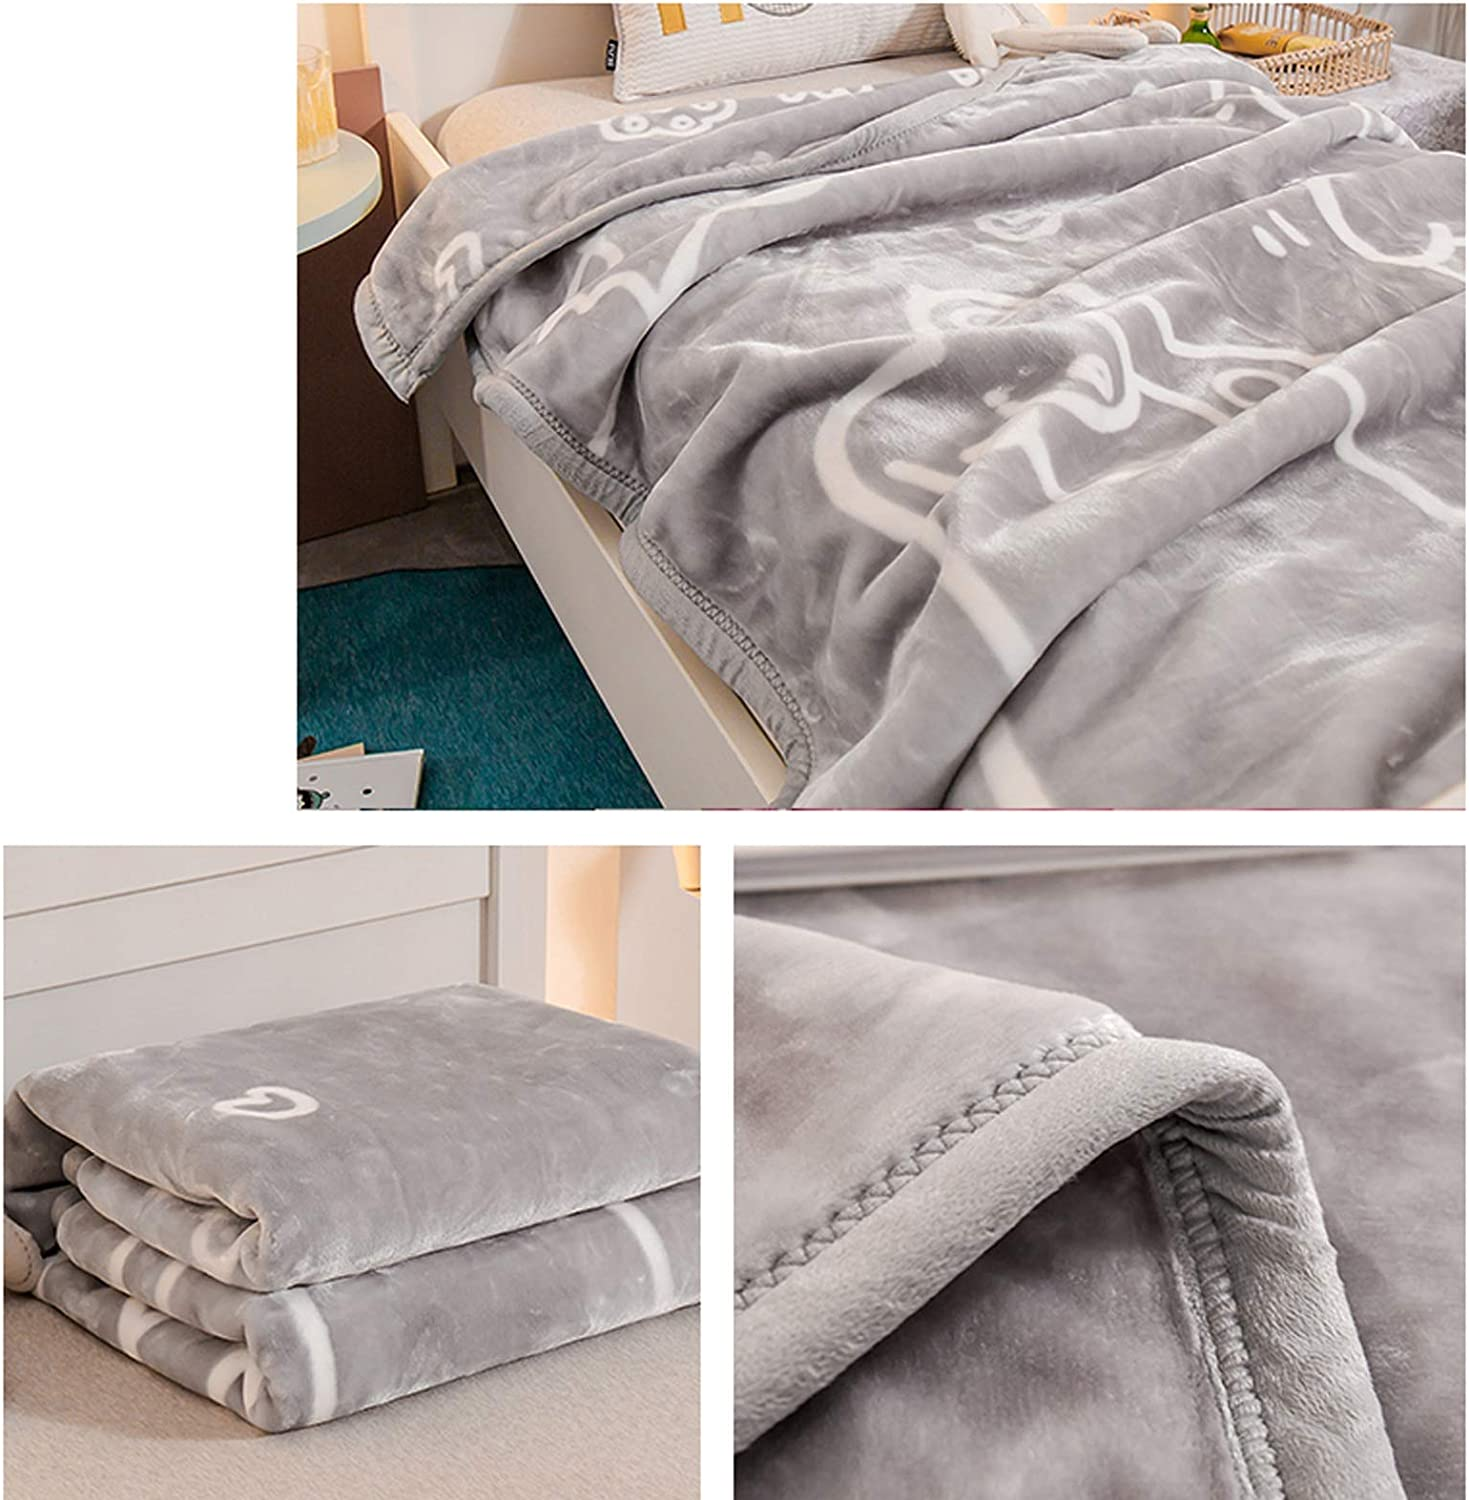 Couverture Décontracté Lit Thicken Enfants Flanelle Chaud Fluffy Nap TV Blanket Climatisation Petite Serviette Blanket Home Office 110X140CM Lostgaming (Color : D) E